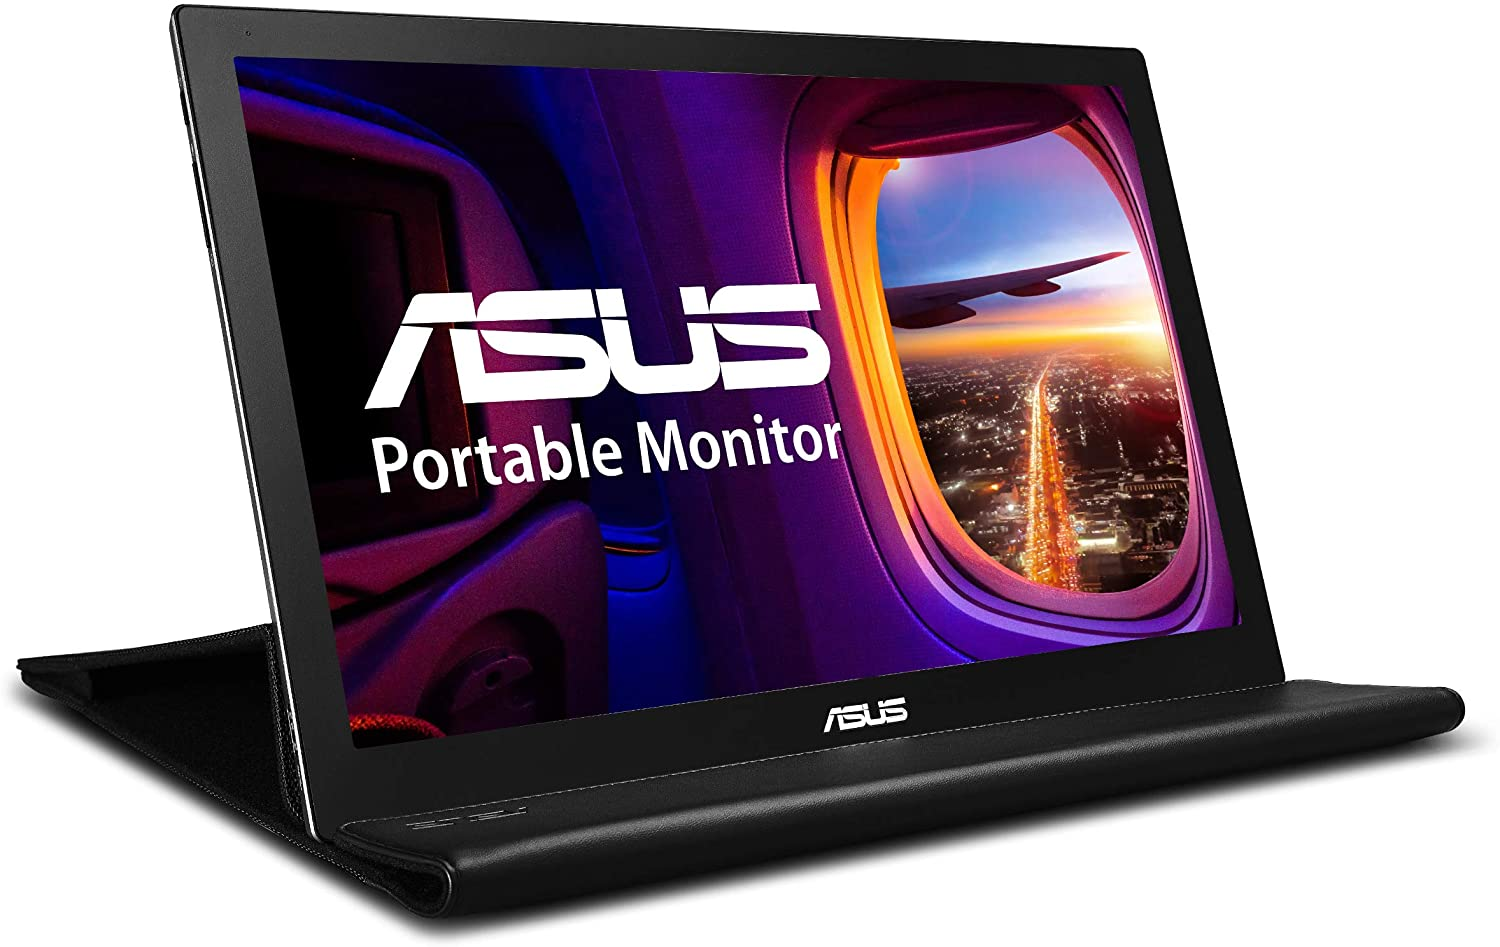 "ASUS MB169B+ - Monitor portátil ultrafino Full HD de 15.6"" (1920x1080 Pixeles, Panel IPS, USB 3.0, ASUS Smart Case incluida, 16:9, grosor 8.5mm, Tecnología EzLink) Negro y Plata"